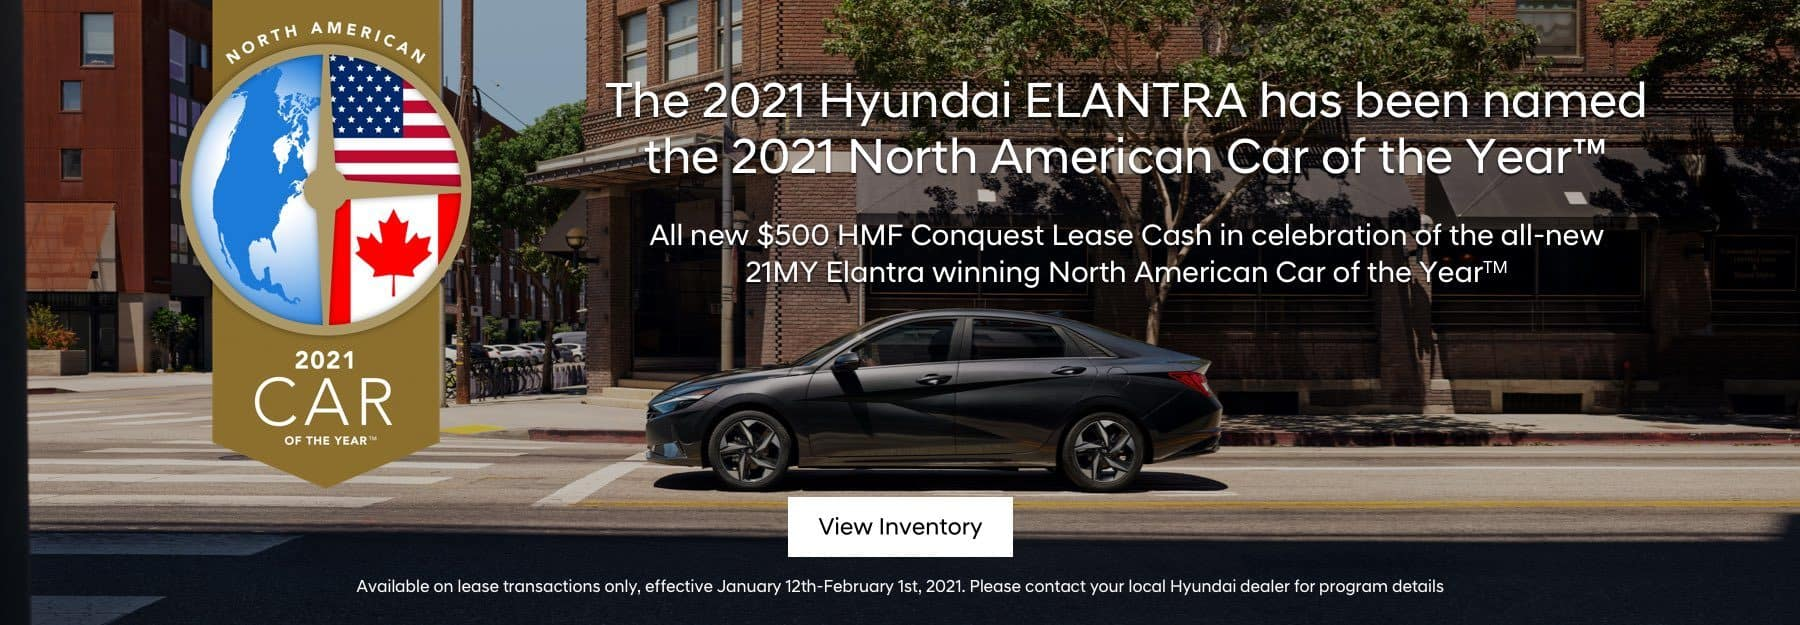 Car of the year – 2021 Elantra